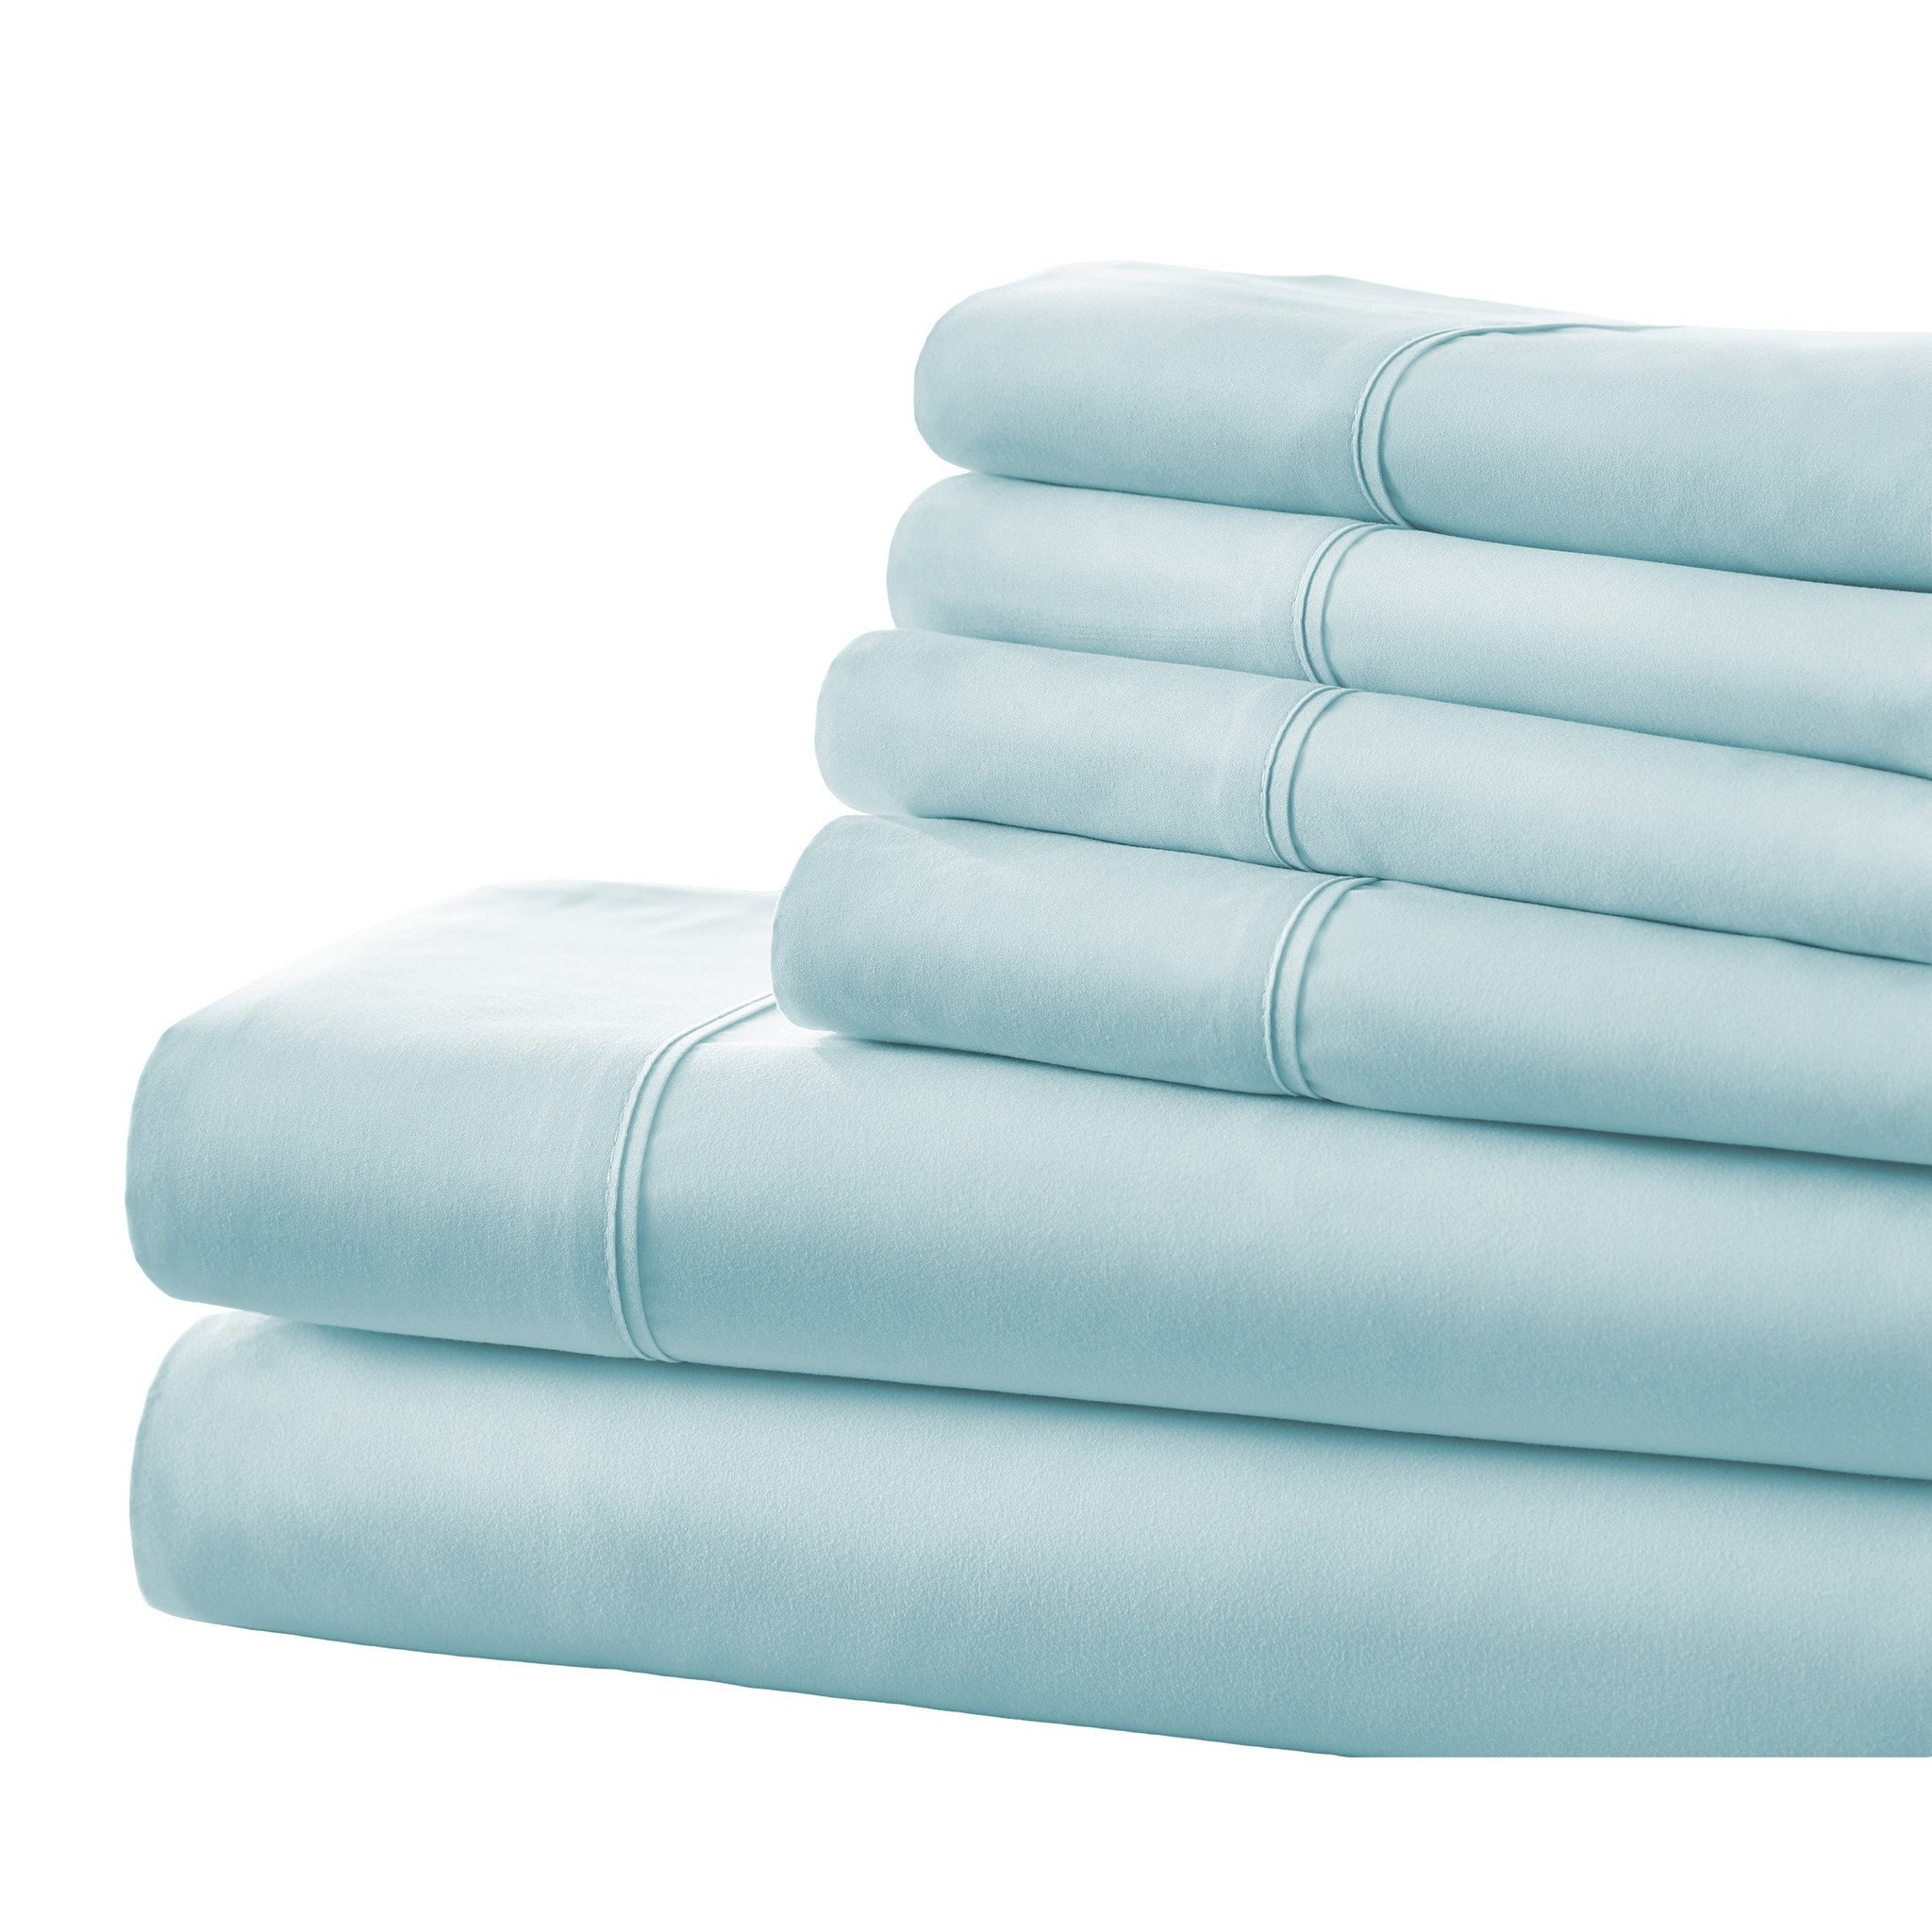 Bamboo 6-Piece Bed Sheet Set in 14 Colors - Full, Catalina Blue 59ce6cd6bd5491033d6d3ca7